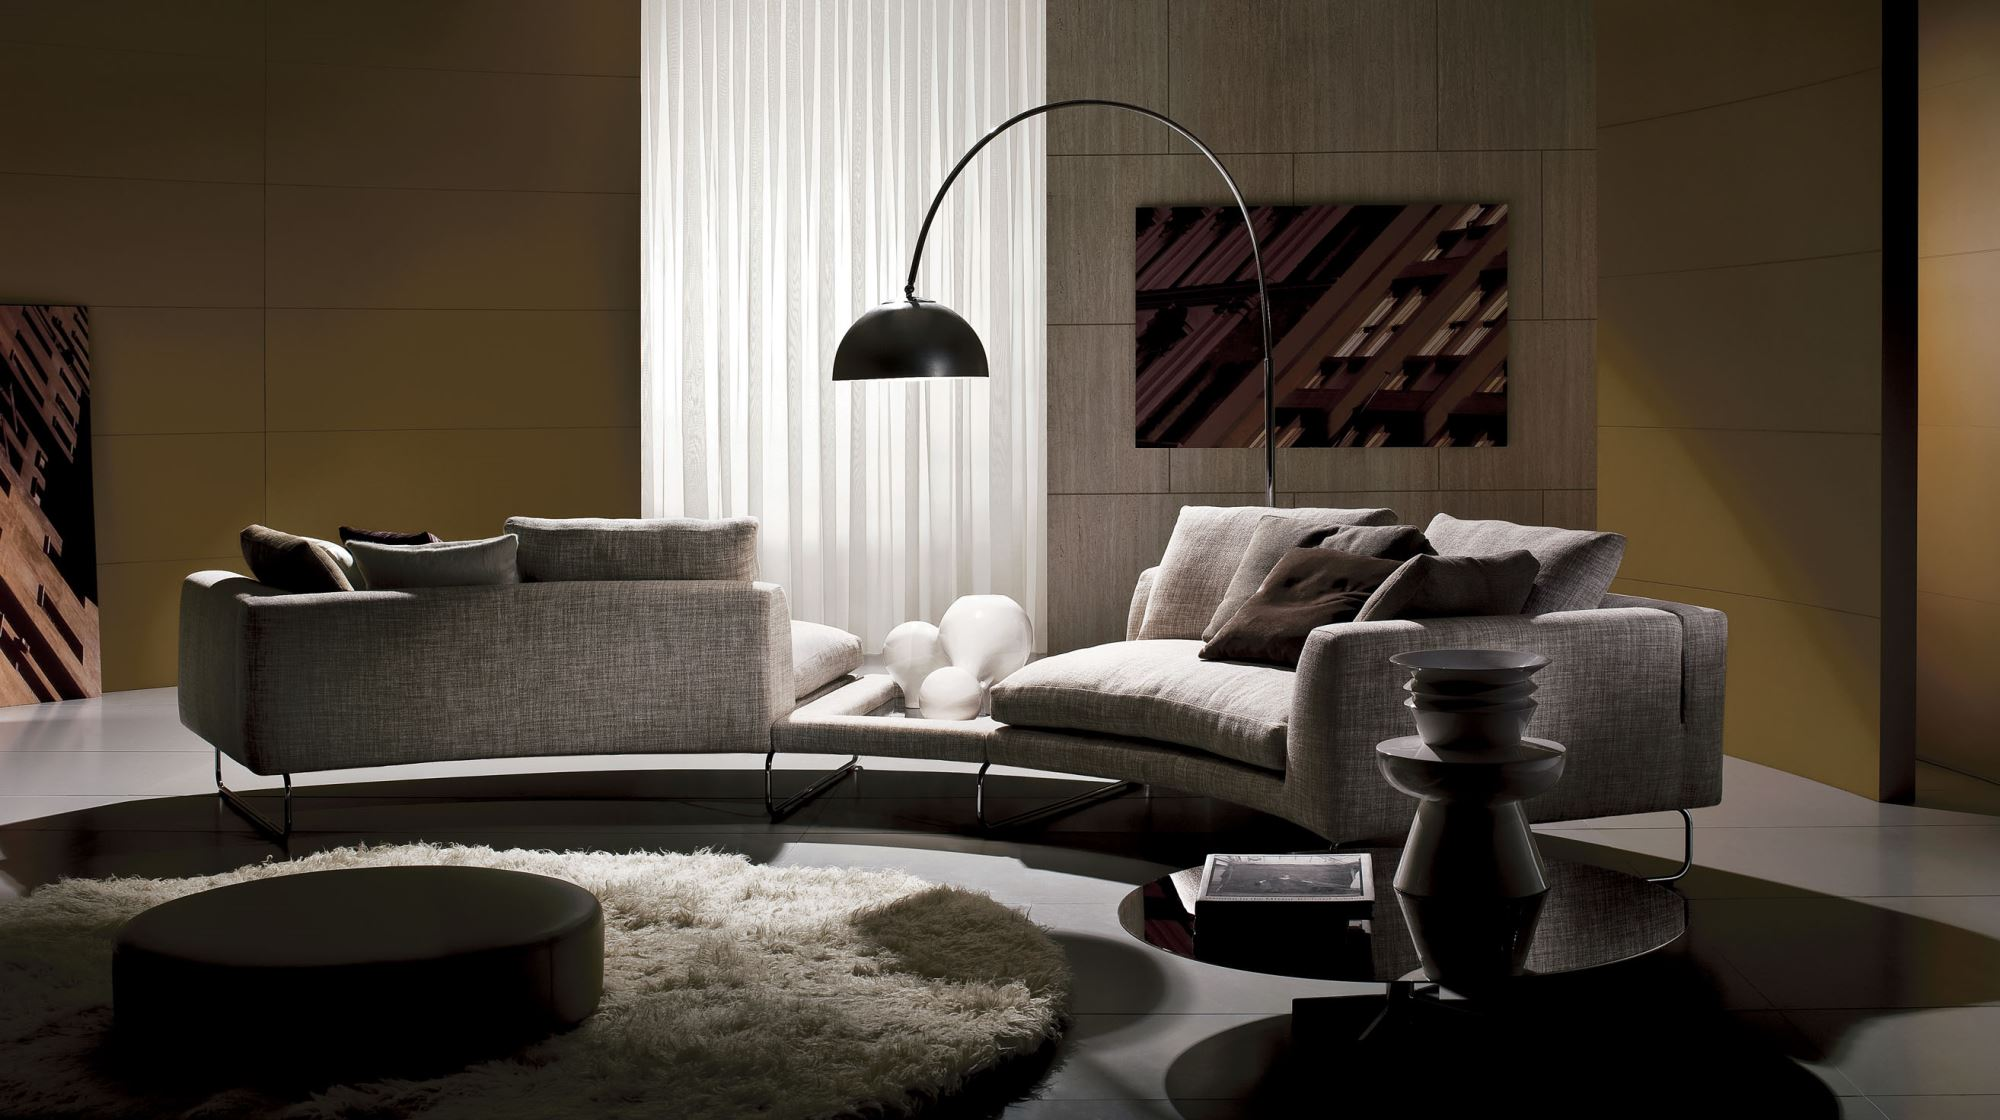 Add look round home collection i 4 mariani s p a for I 4 mariani